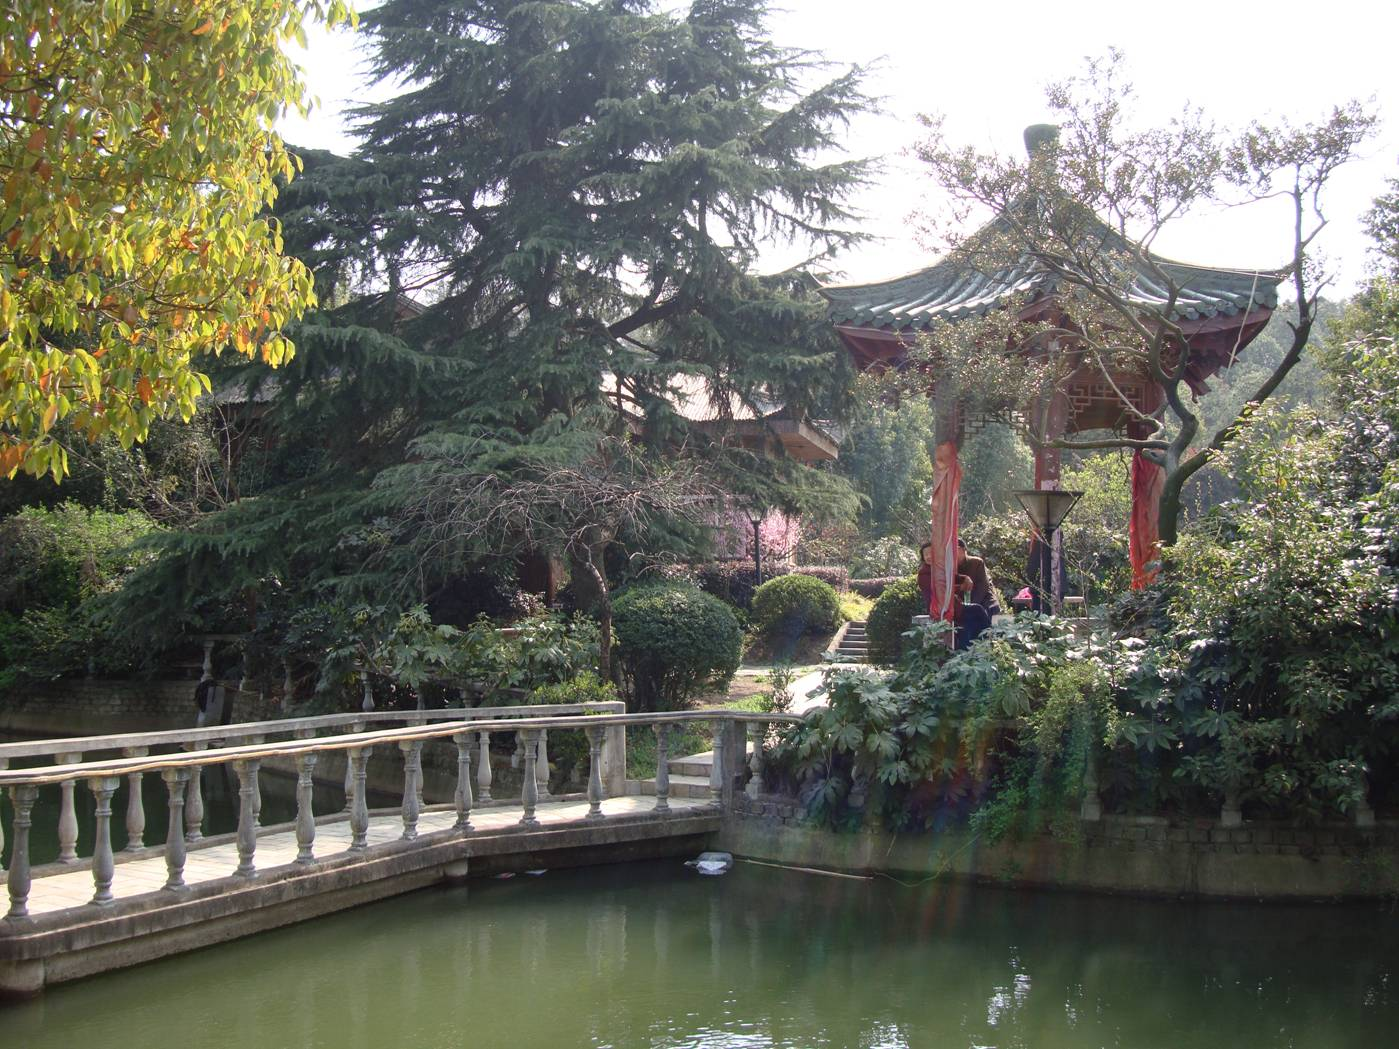 Picture:  A pond and pagoda, part of a hotel complex near Yang Shan, Wuxi, China